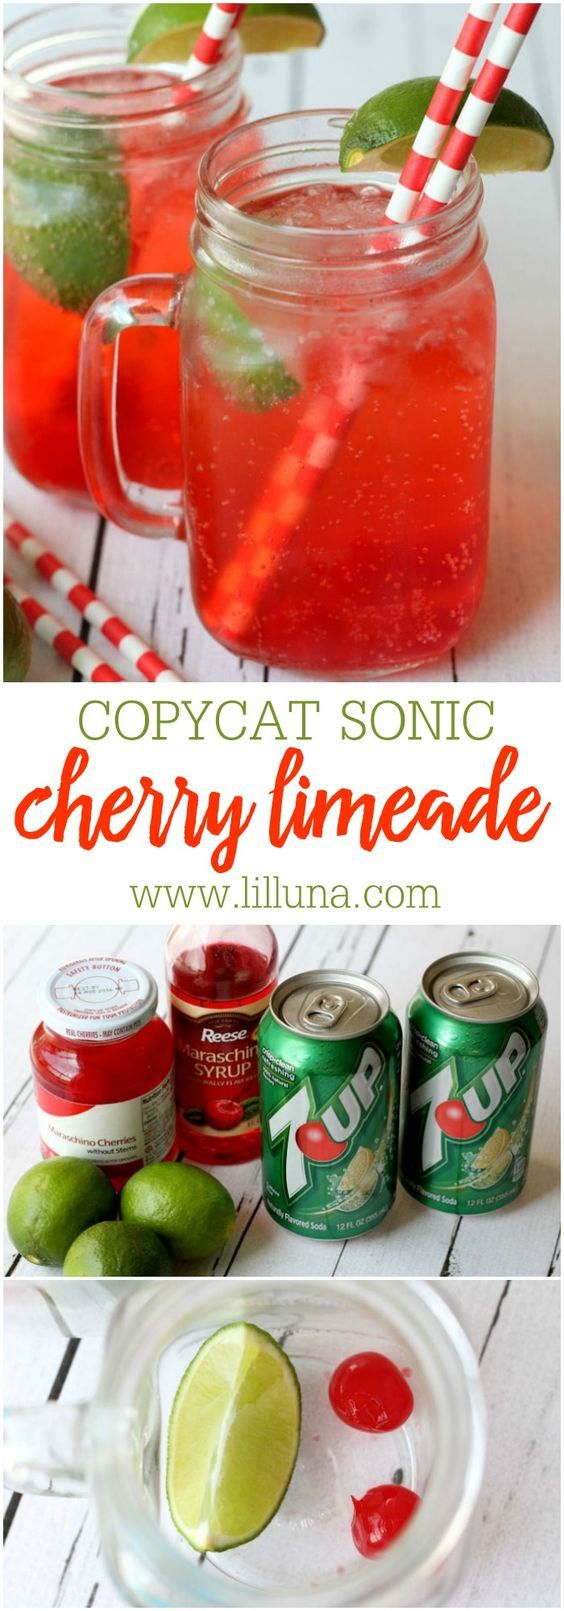 Delicious recipe for Sonic's Cherry Limeade - tastes just like it! Ingredients include 7-Up, cherries, a lime, and maraschino syrup!